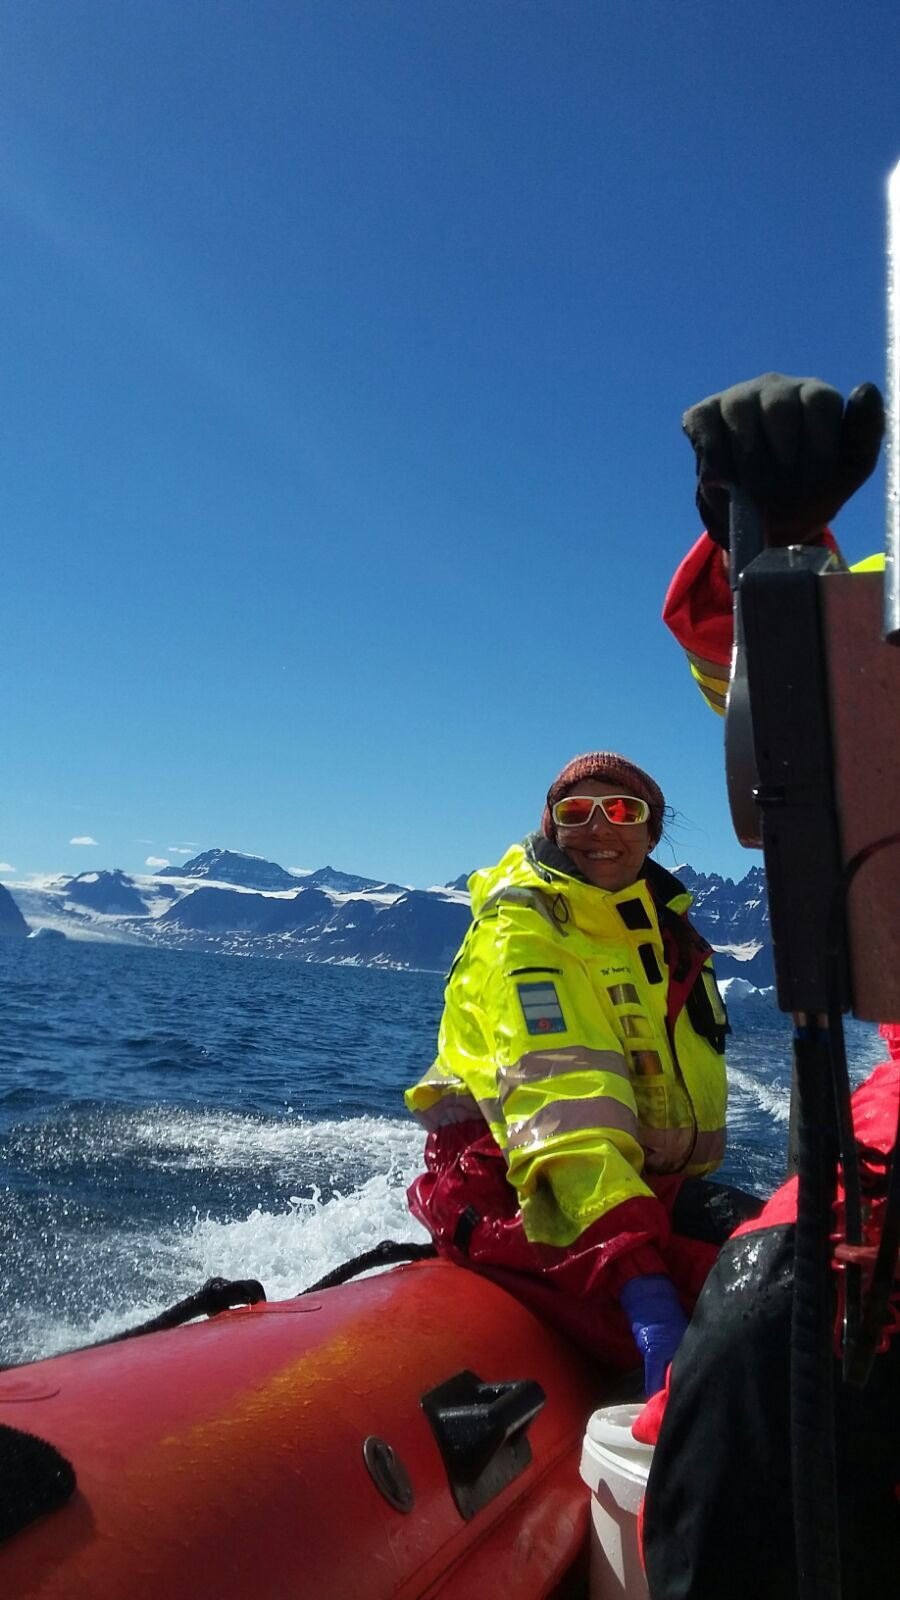 MARine microbiologist & algae lover working on climate change impacts in the Arctic #actuallivingscientist #womeninscience #DressLikeAWoman https://t.co/CTmtas0KlN